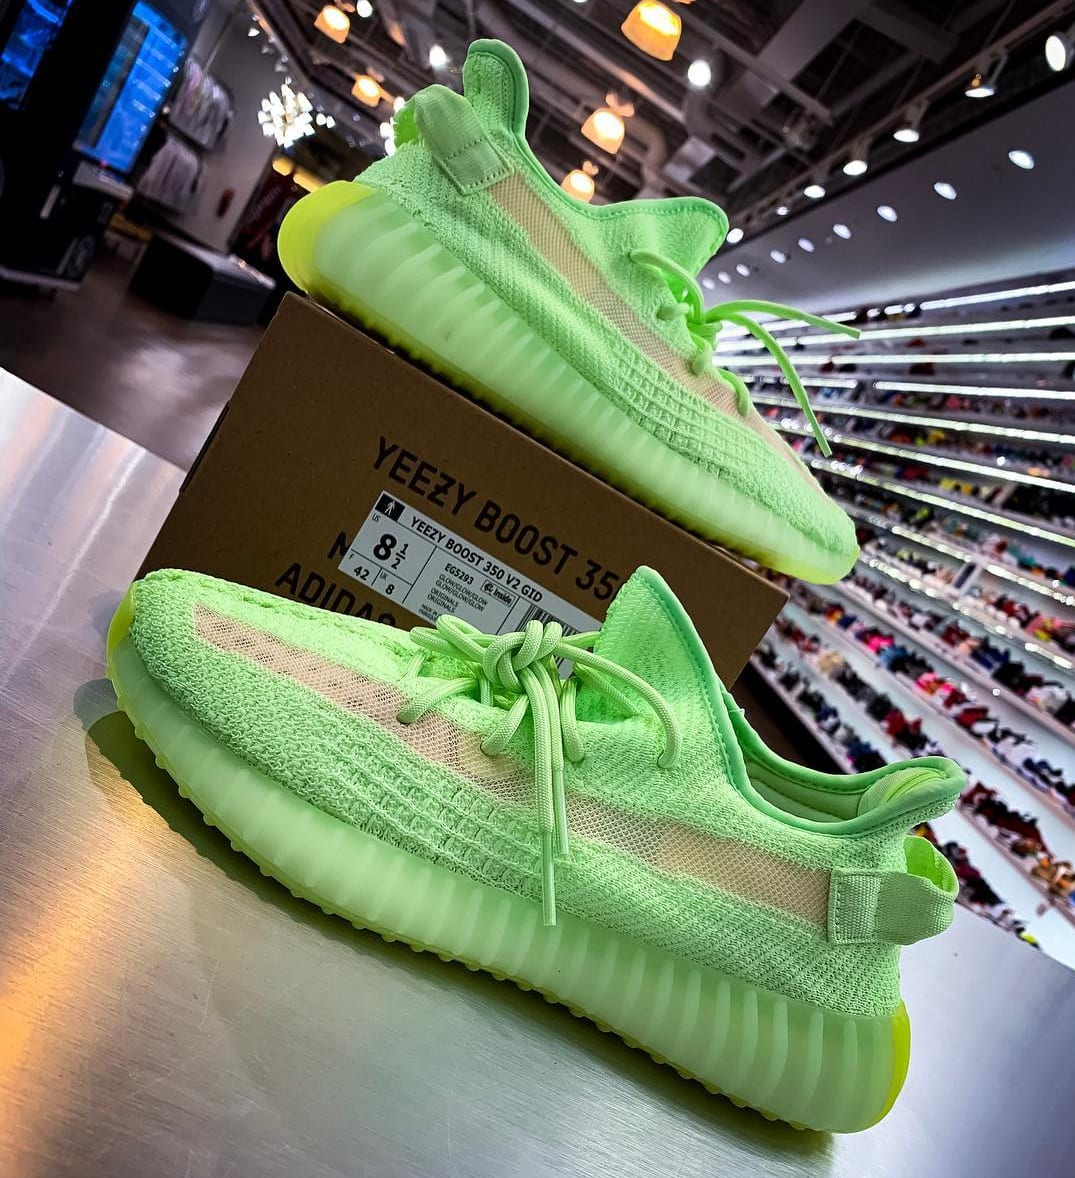 Adidas Yeezy Boost 350 V2 'Glow in the Dark' 1